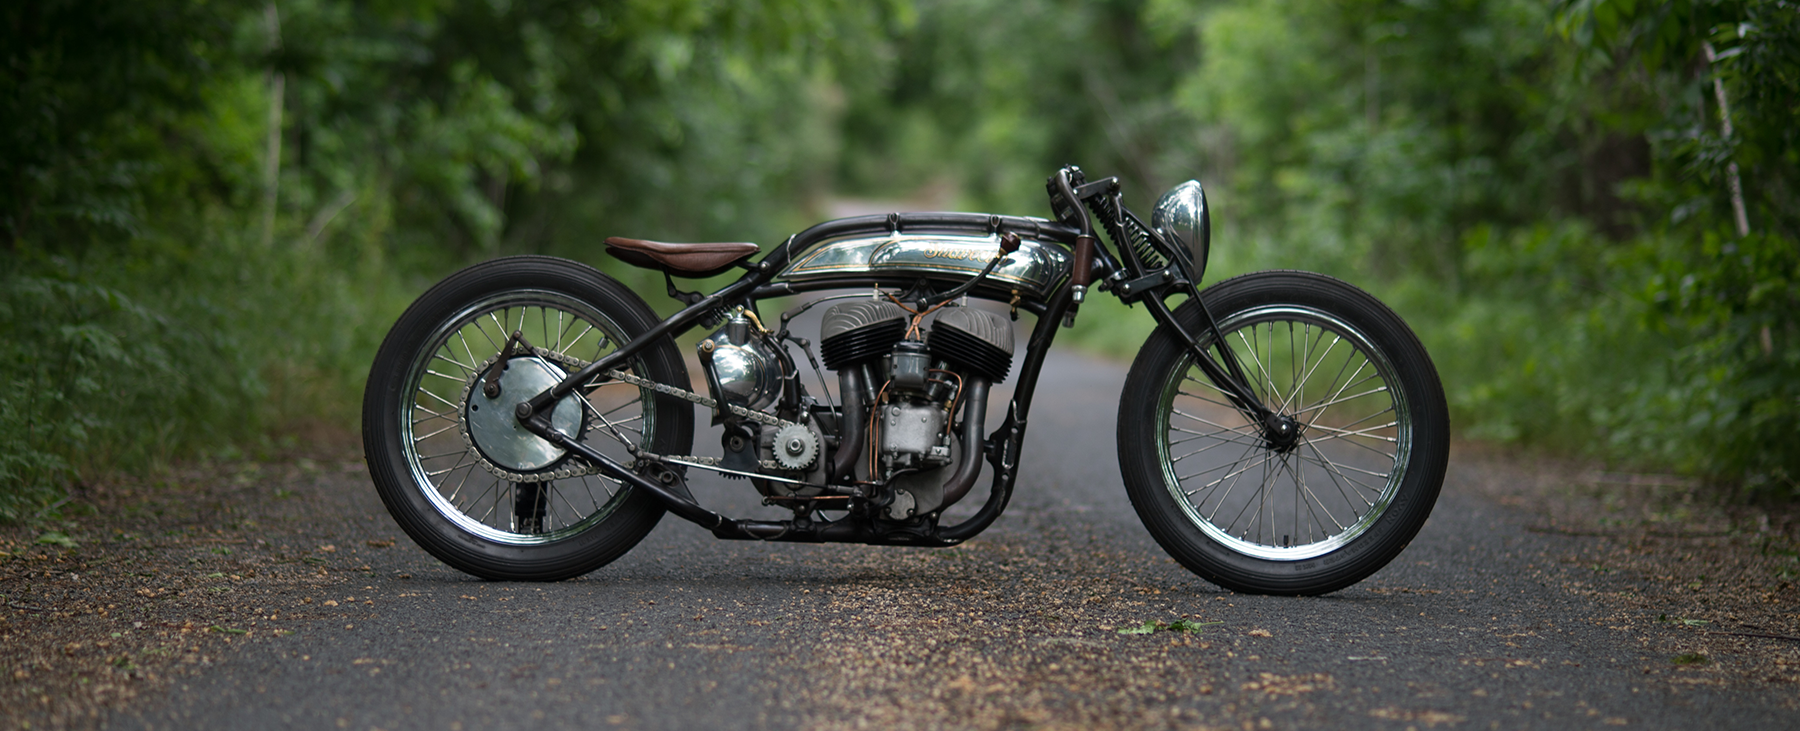 INDIAN SCOUT - Header Image